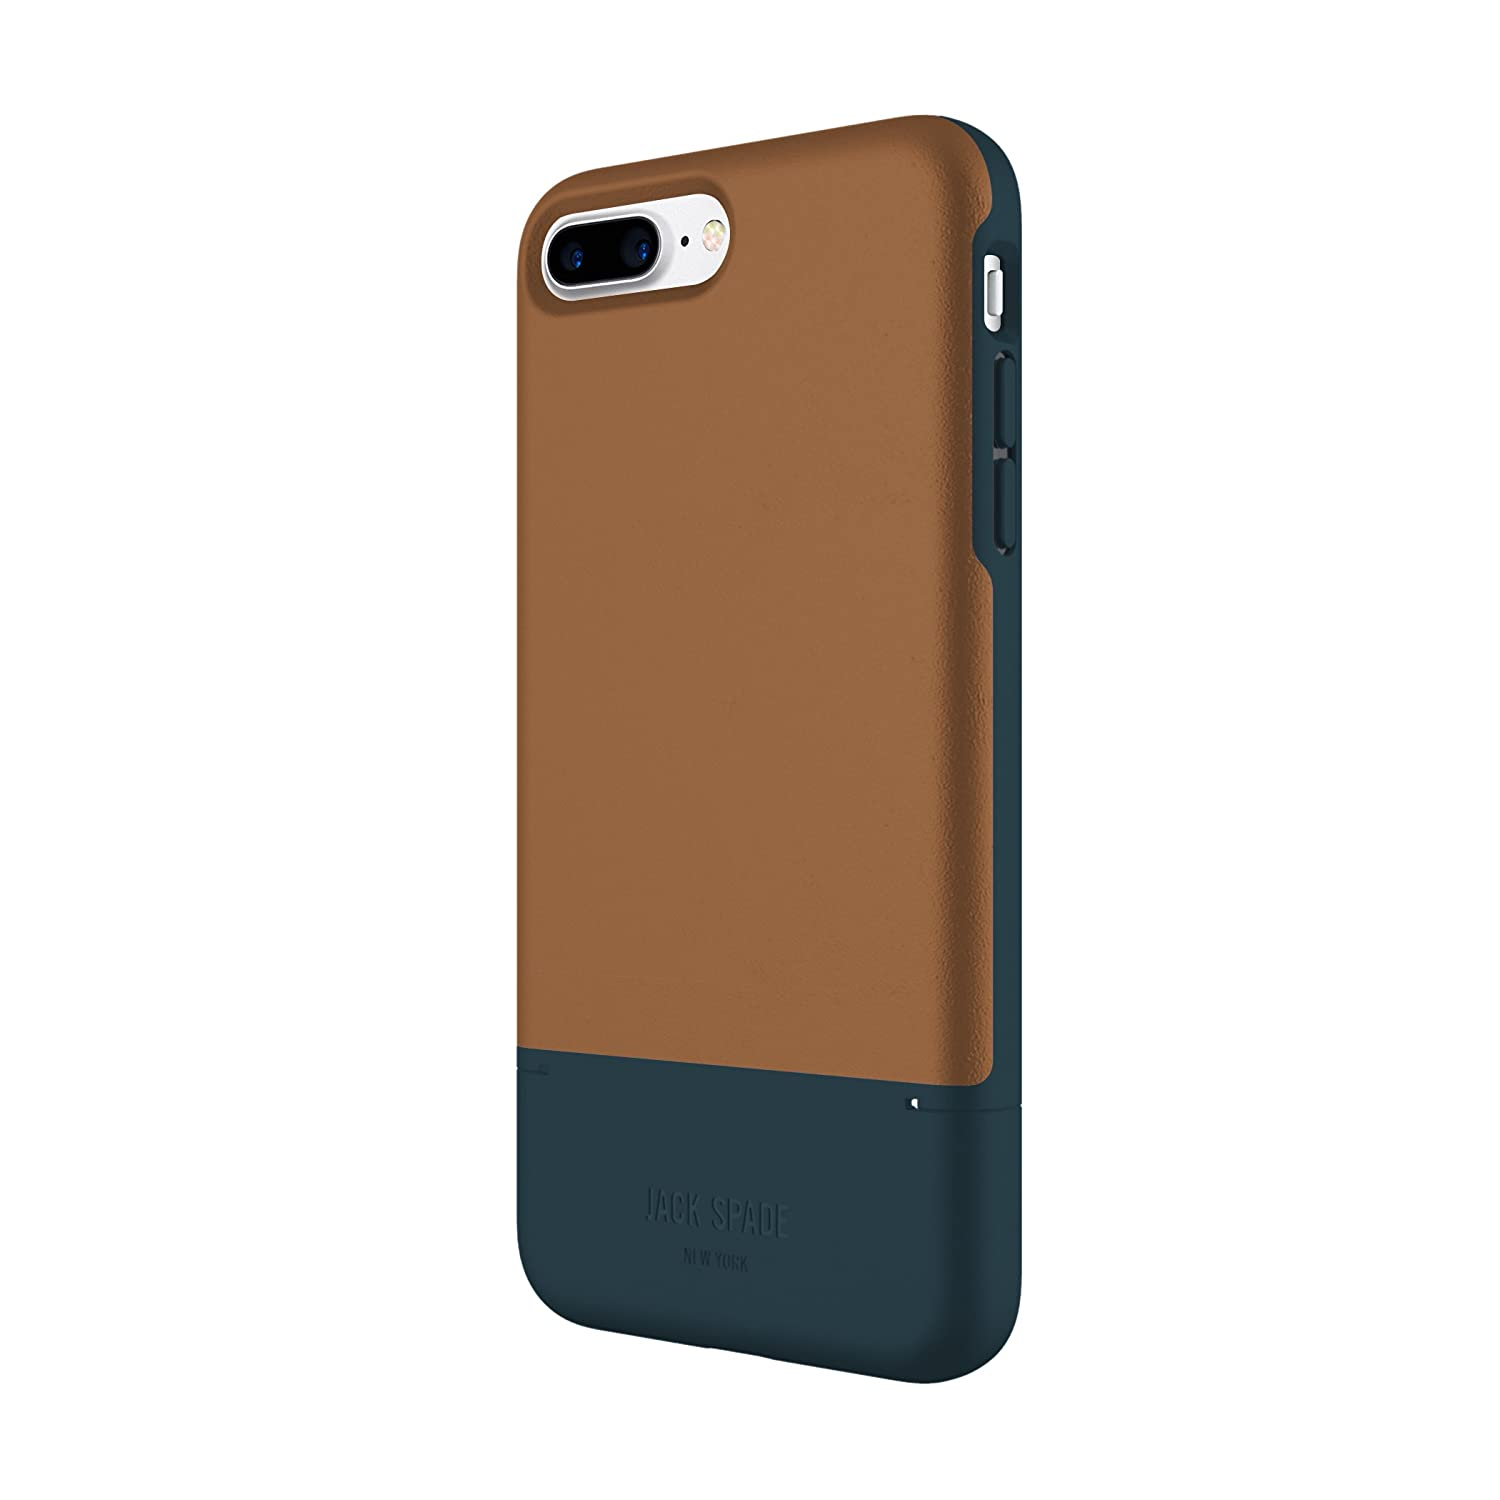 sports shoes 035eb 5dd01 JACK SPADE Credit Card Case for iPhone 8 Plus & iPhone 7 Plus ...